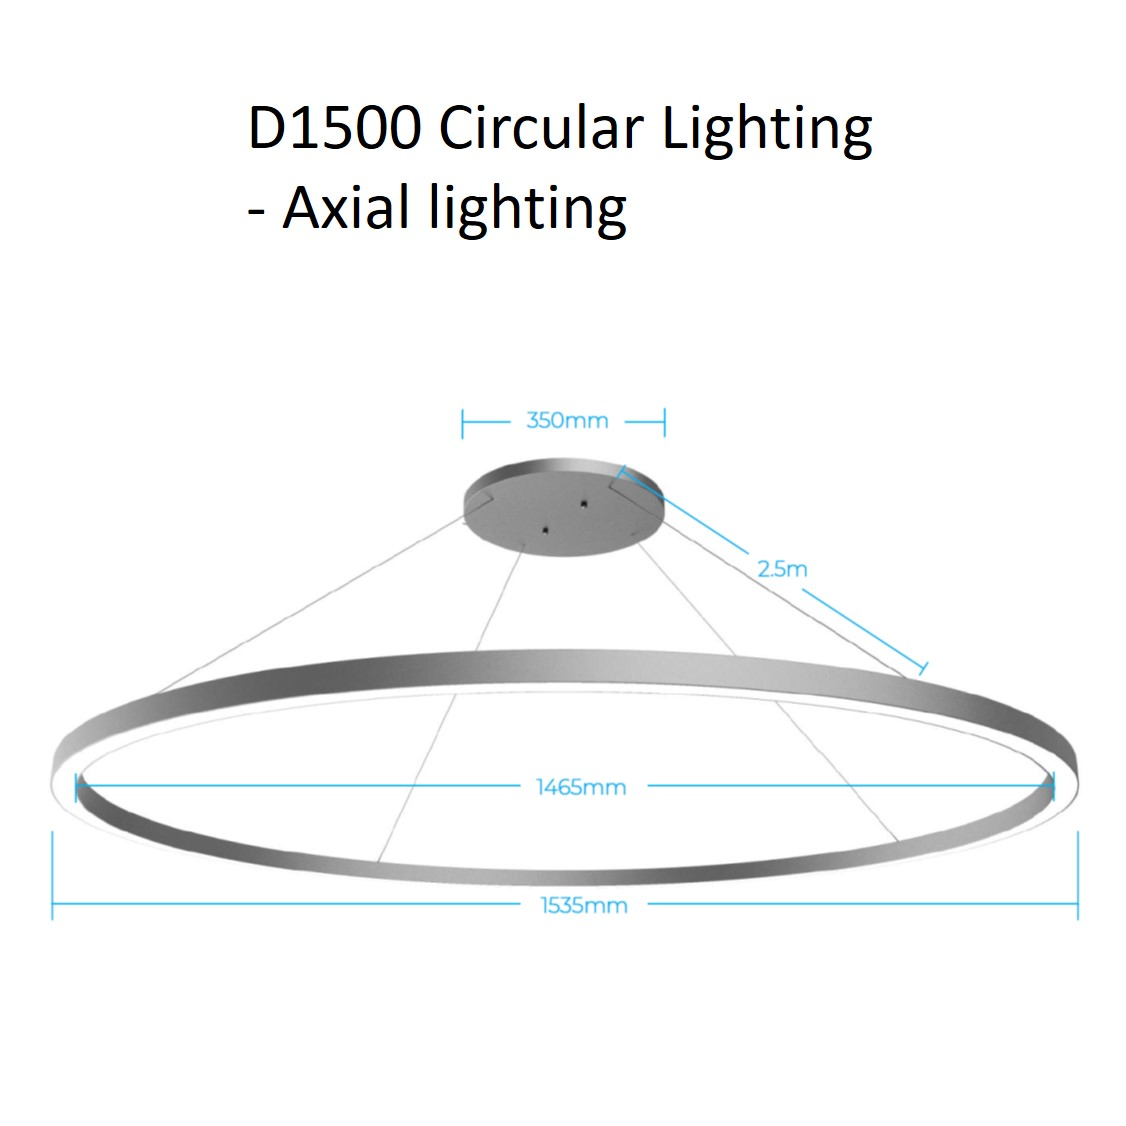 D1500 circular lighting - axial